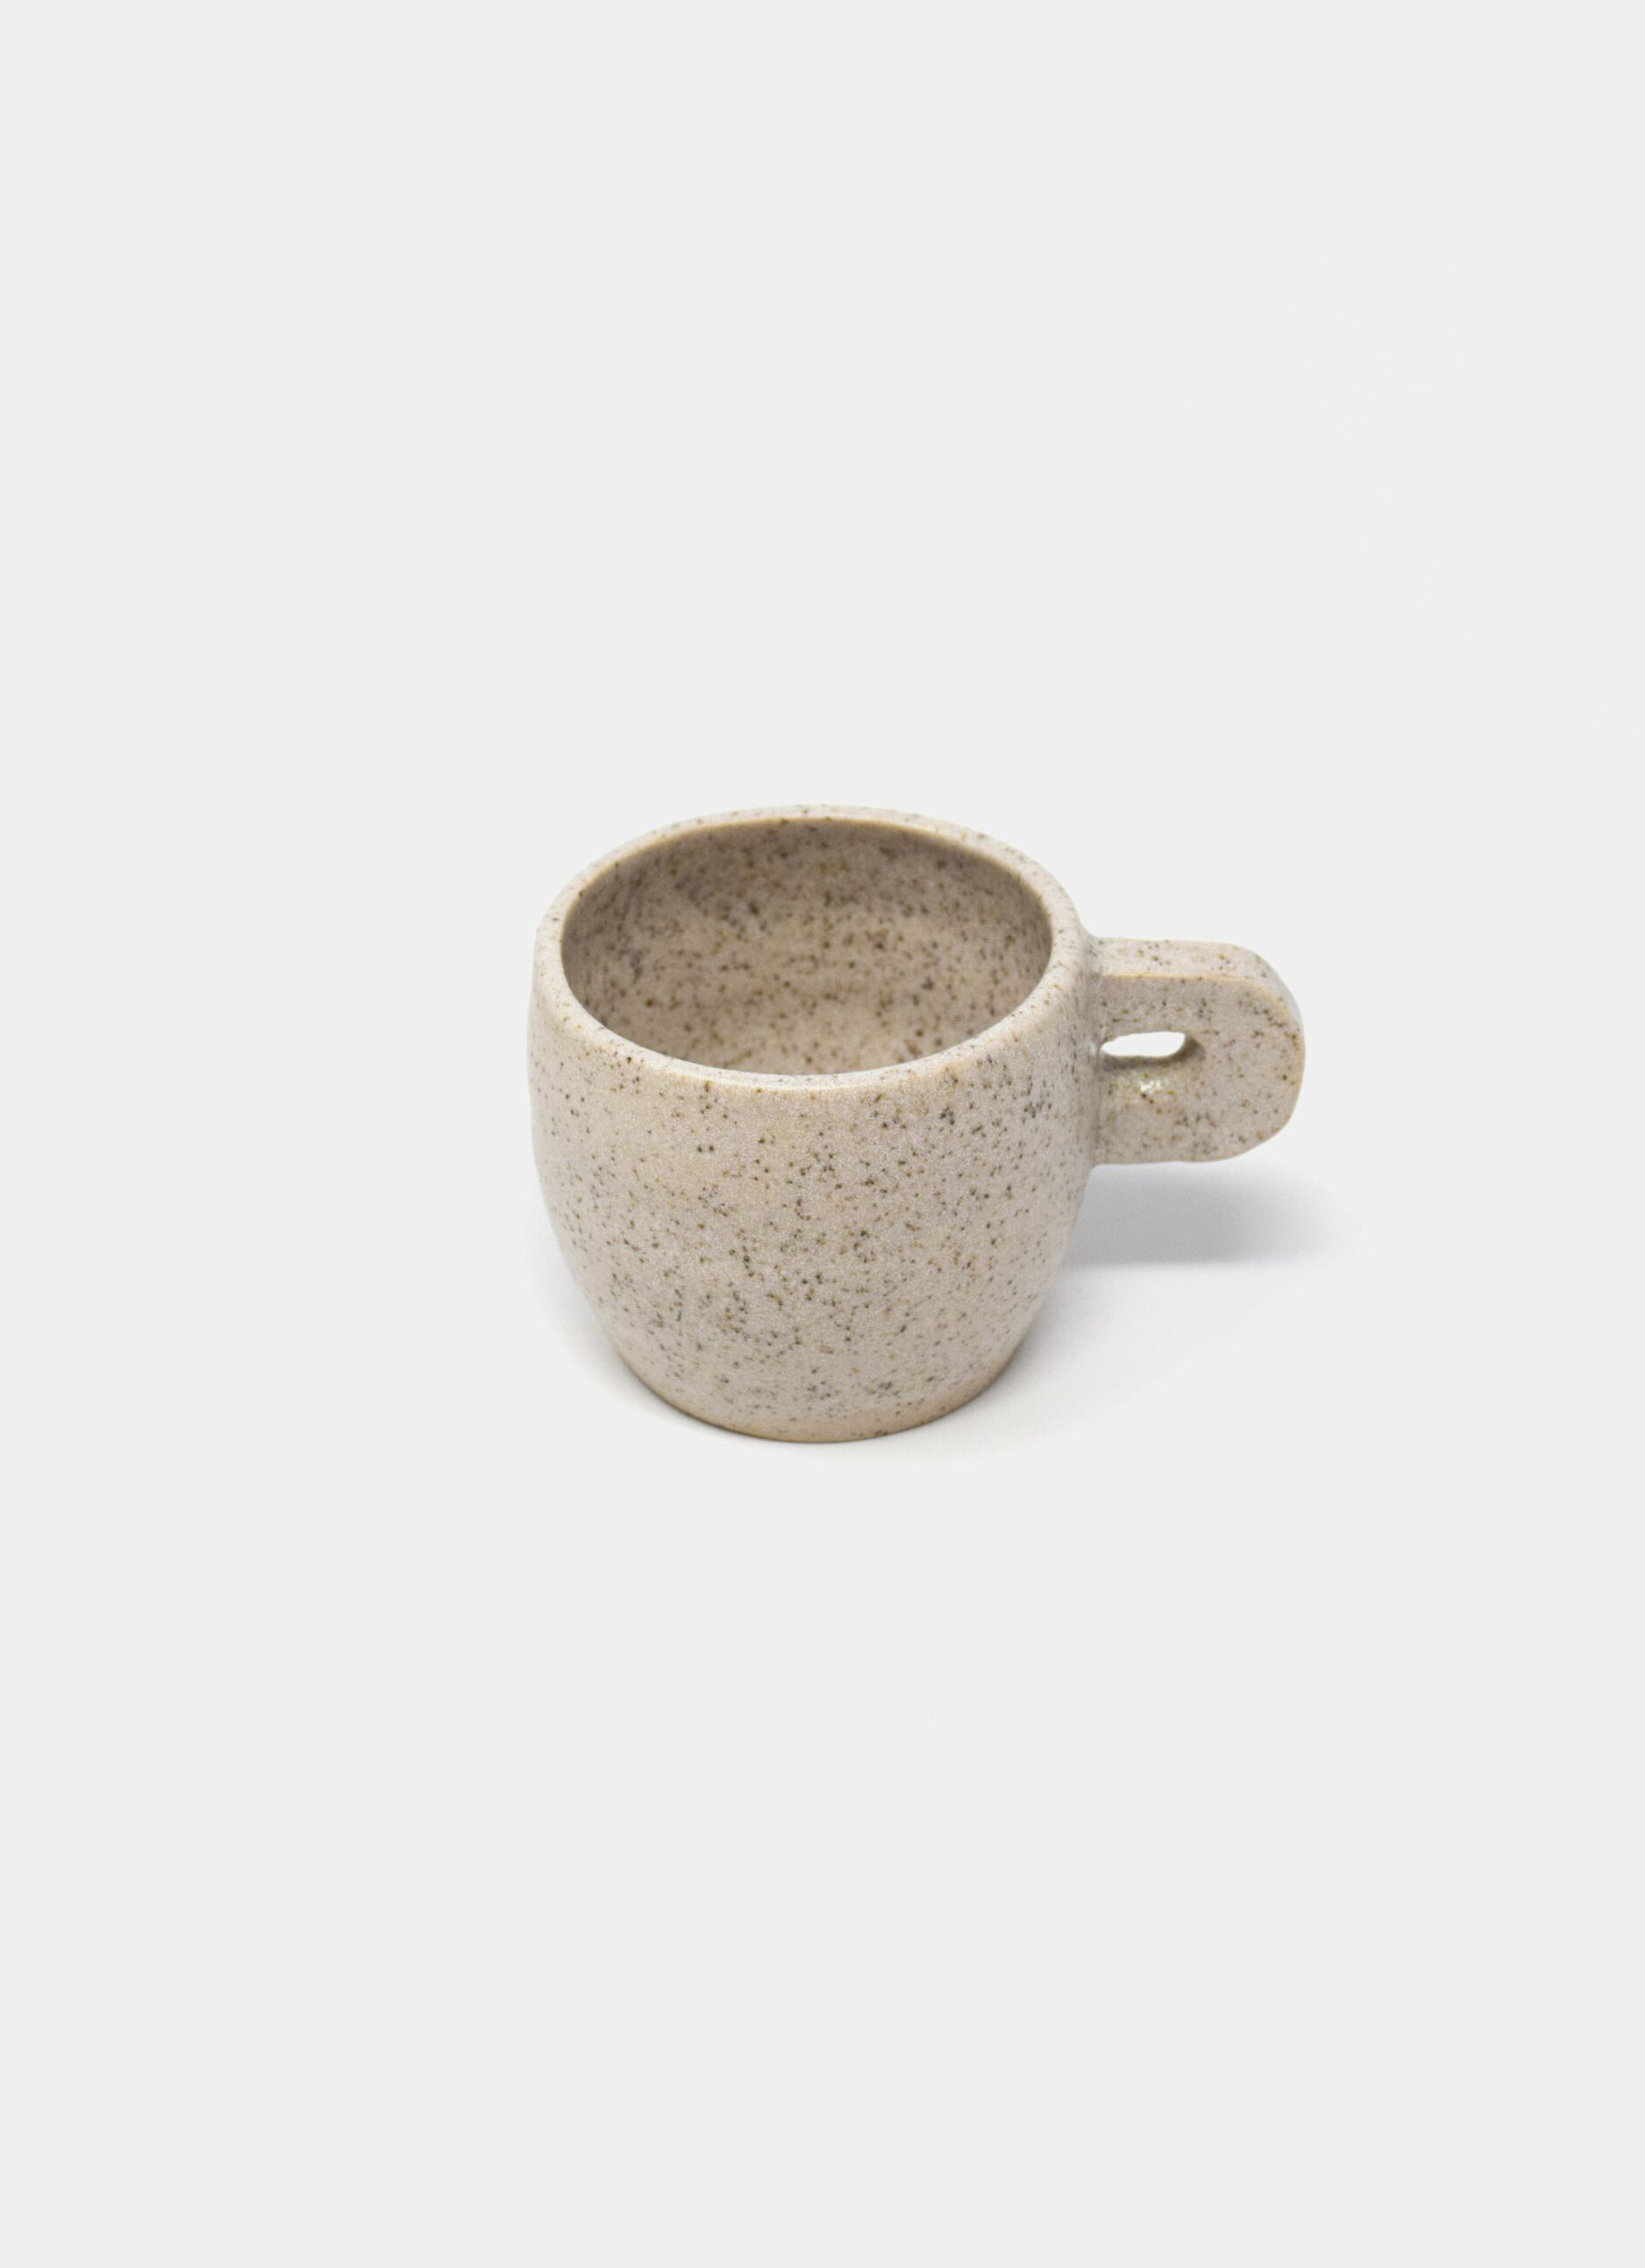 Kuza - Coffee Cup - Speckled White